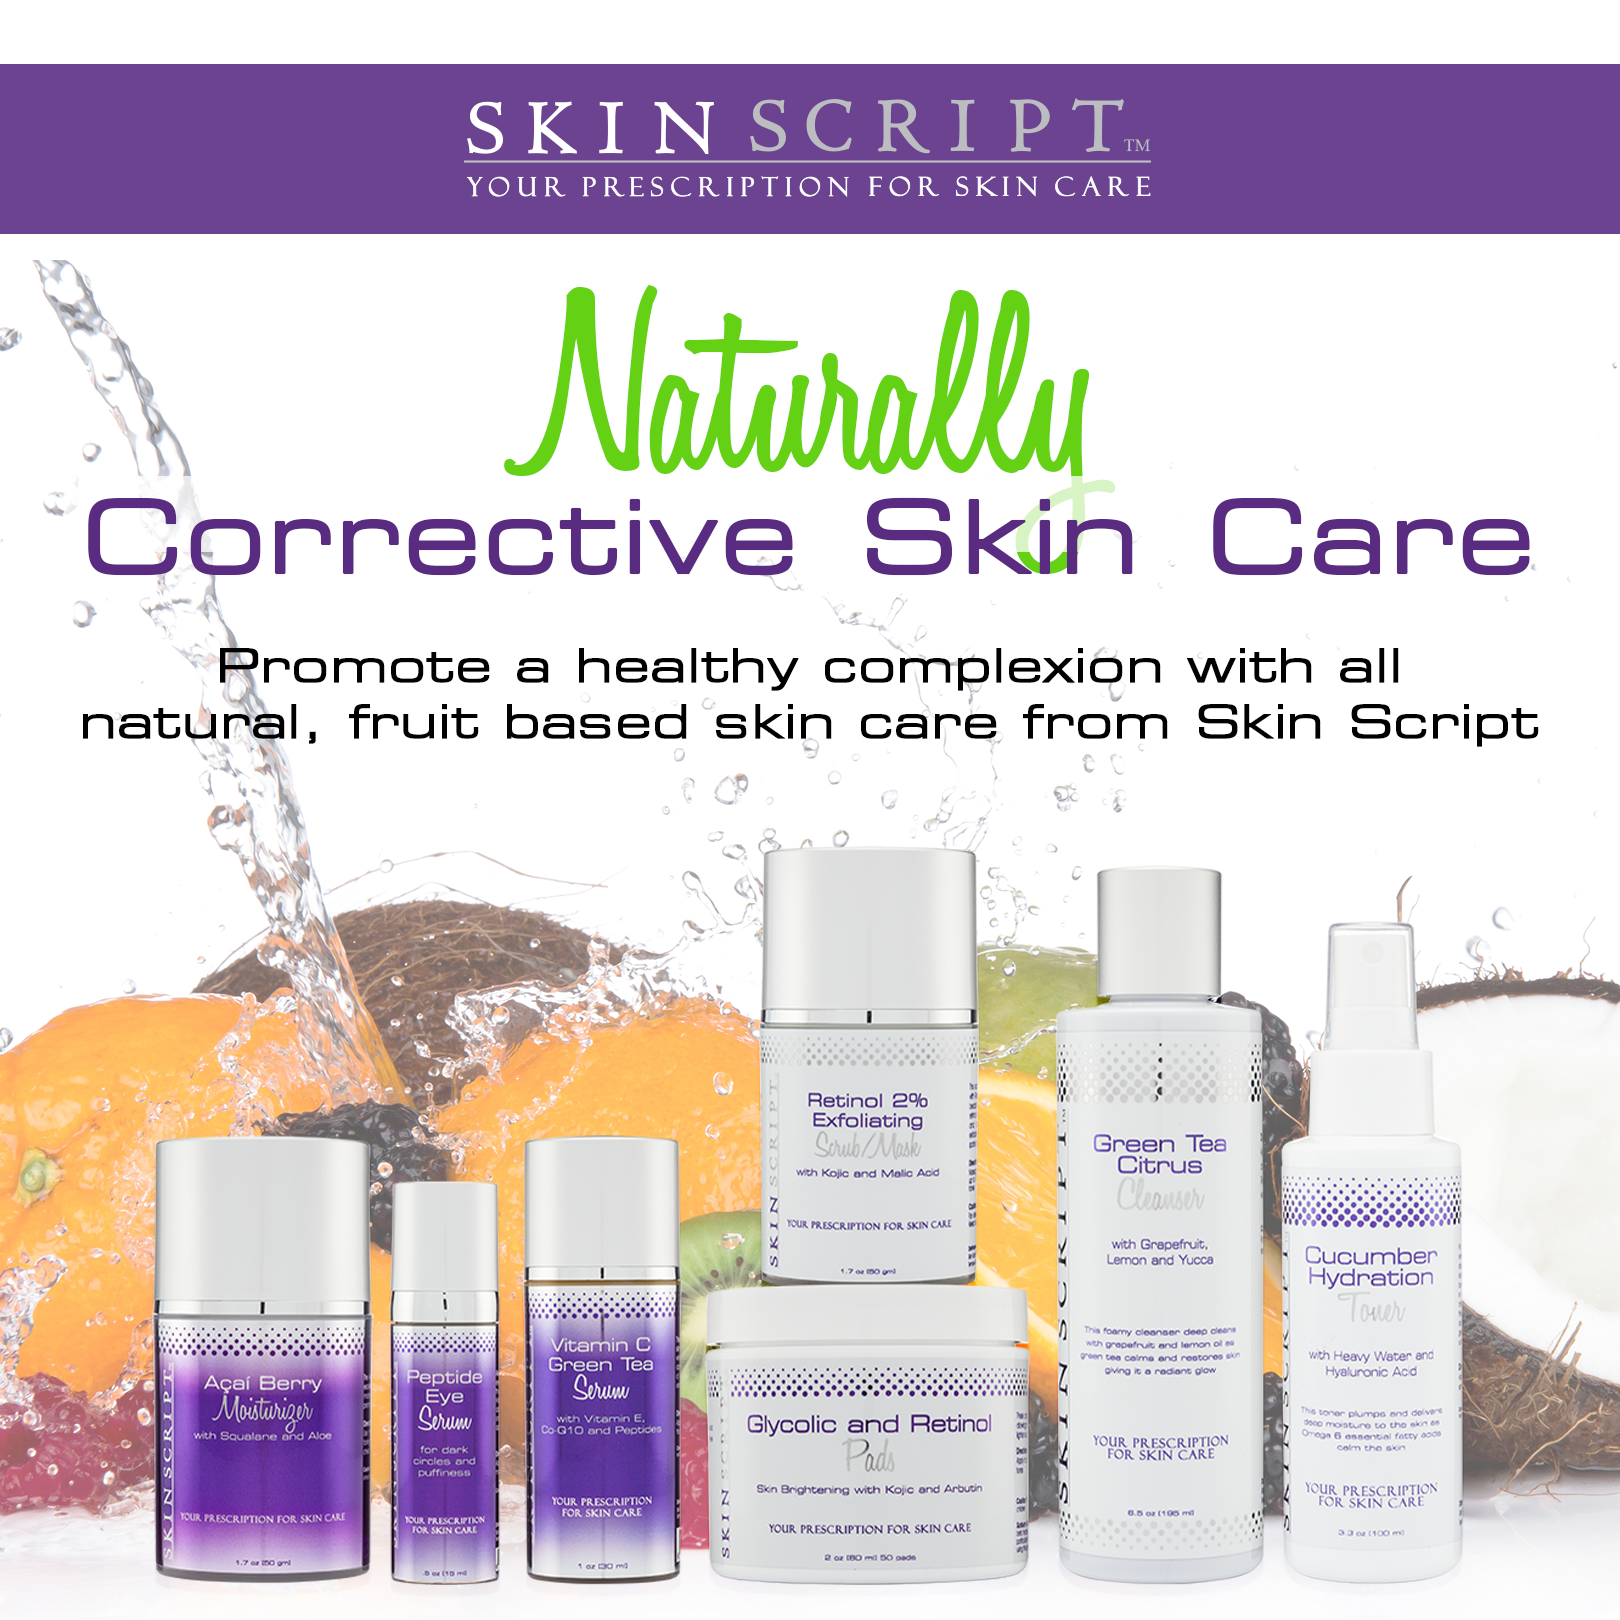 Clinical Professional Skin Care Line Containing Retinols Glycolics Lactics Salicylics More